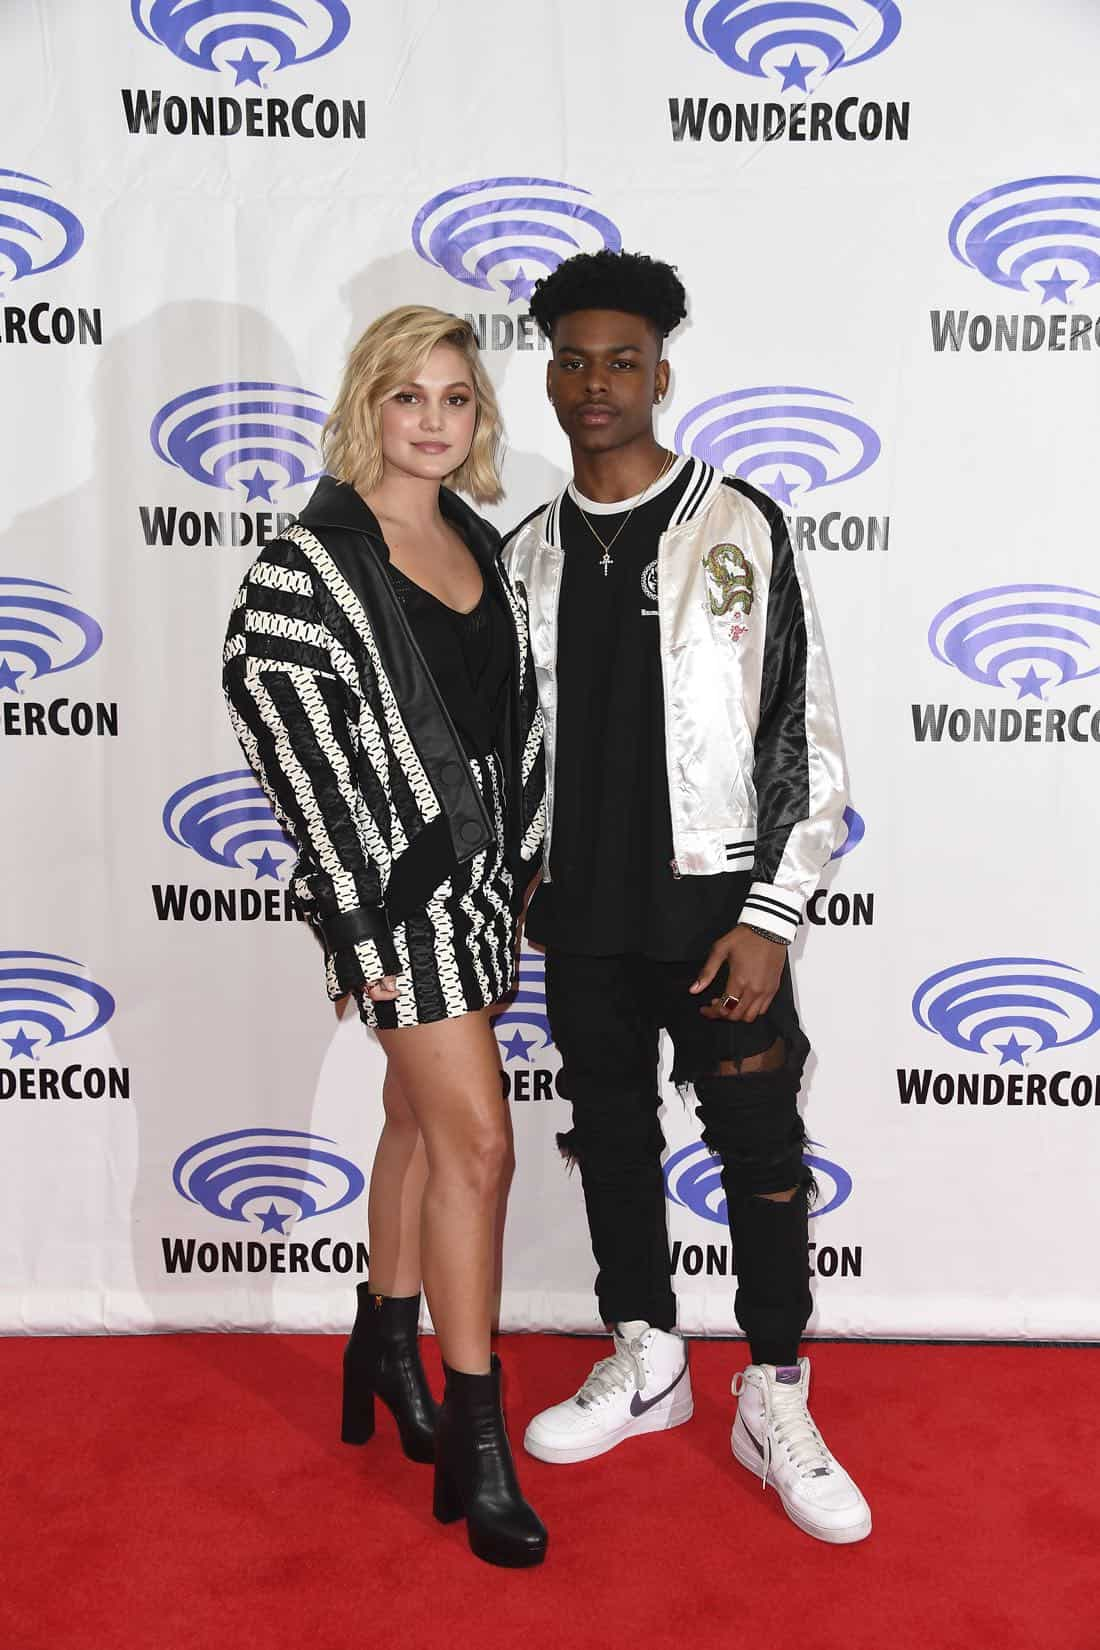 "MARVEL'S CLOAK & DAGGER - The executive producers and cast of Freeform's highly-anticipated new original series ""Marvel's Cloak & Dagger"" attended WonderCon to promote the June 7th premiere. (Freeform/Aaron Poole) OLIVIA HOLT, AUBREY JOSEPH"